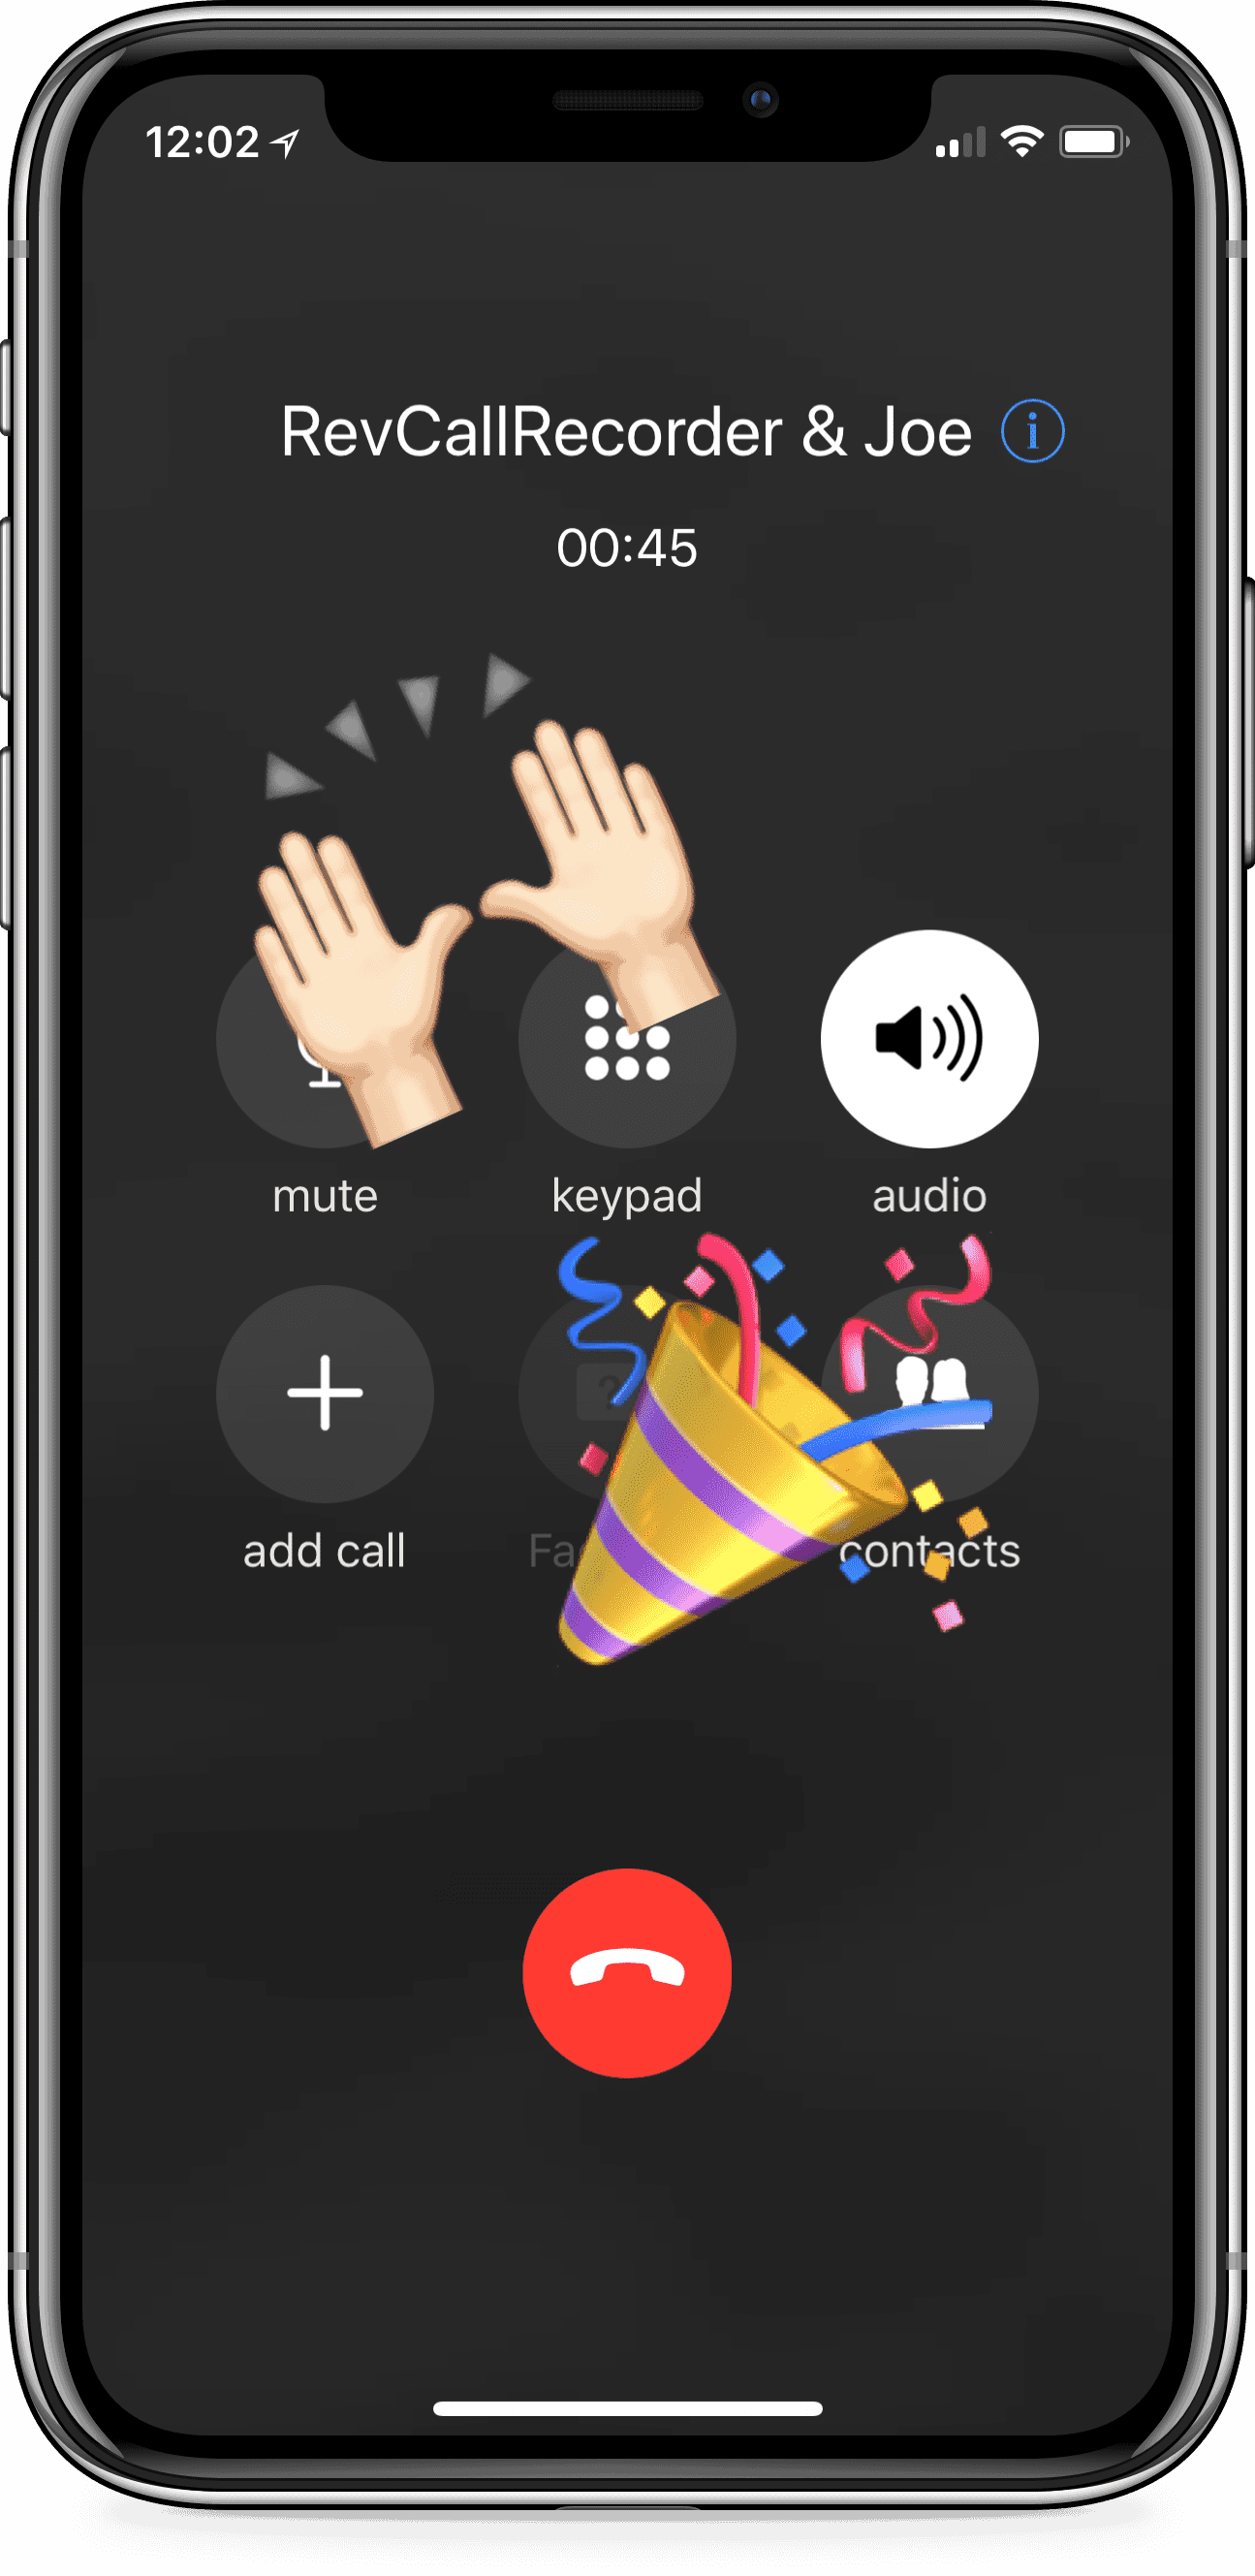 iPhone using Rev Call Recorder app with screen showing the hands raised and celebration emoji